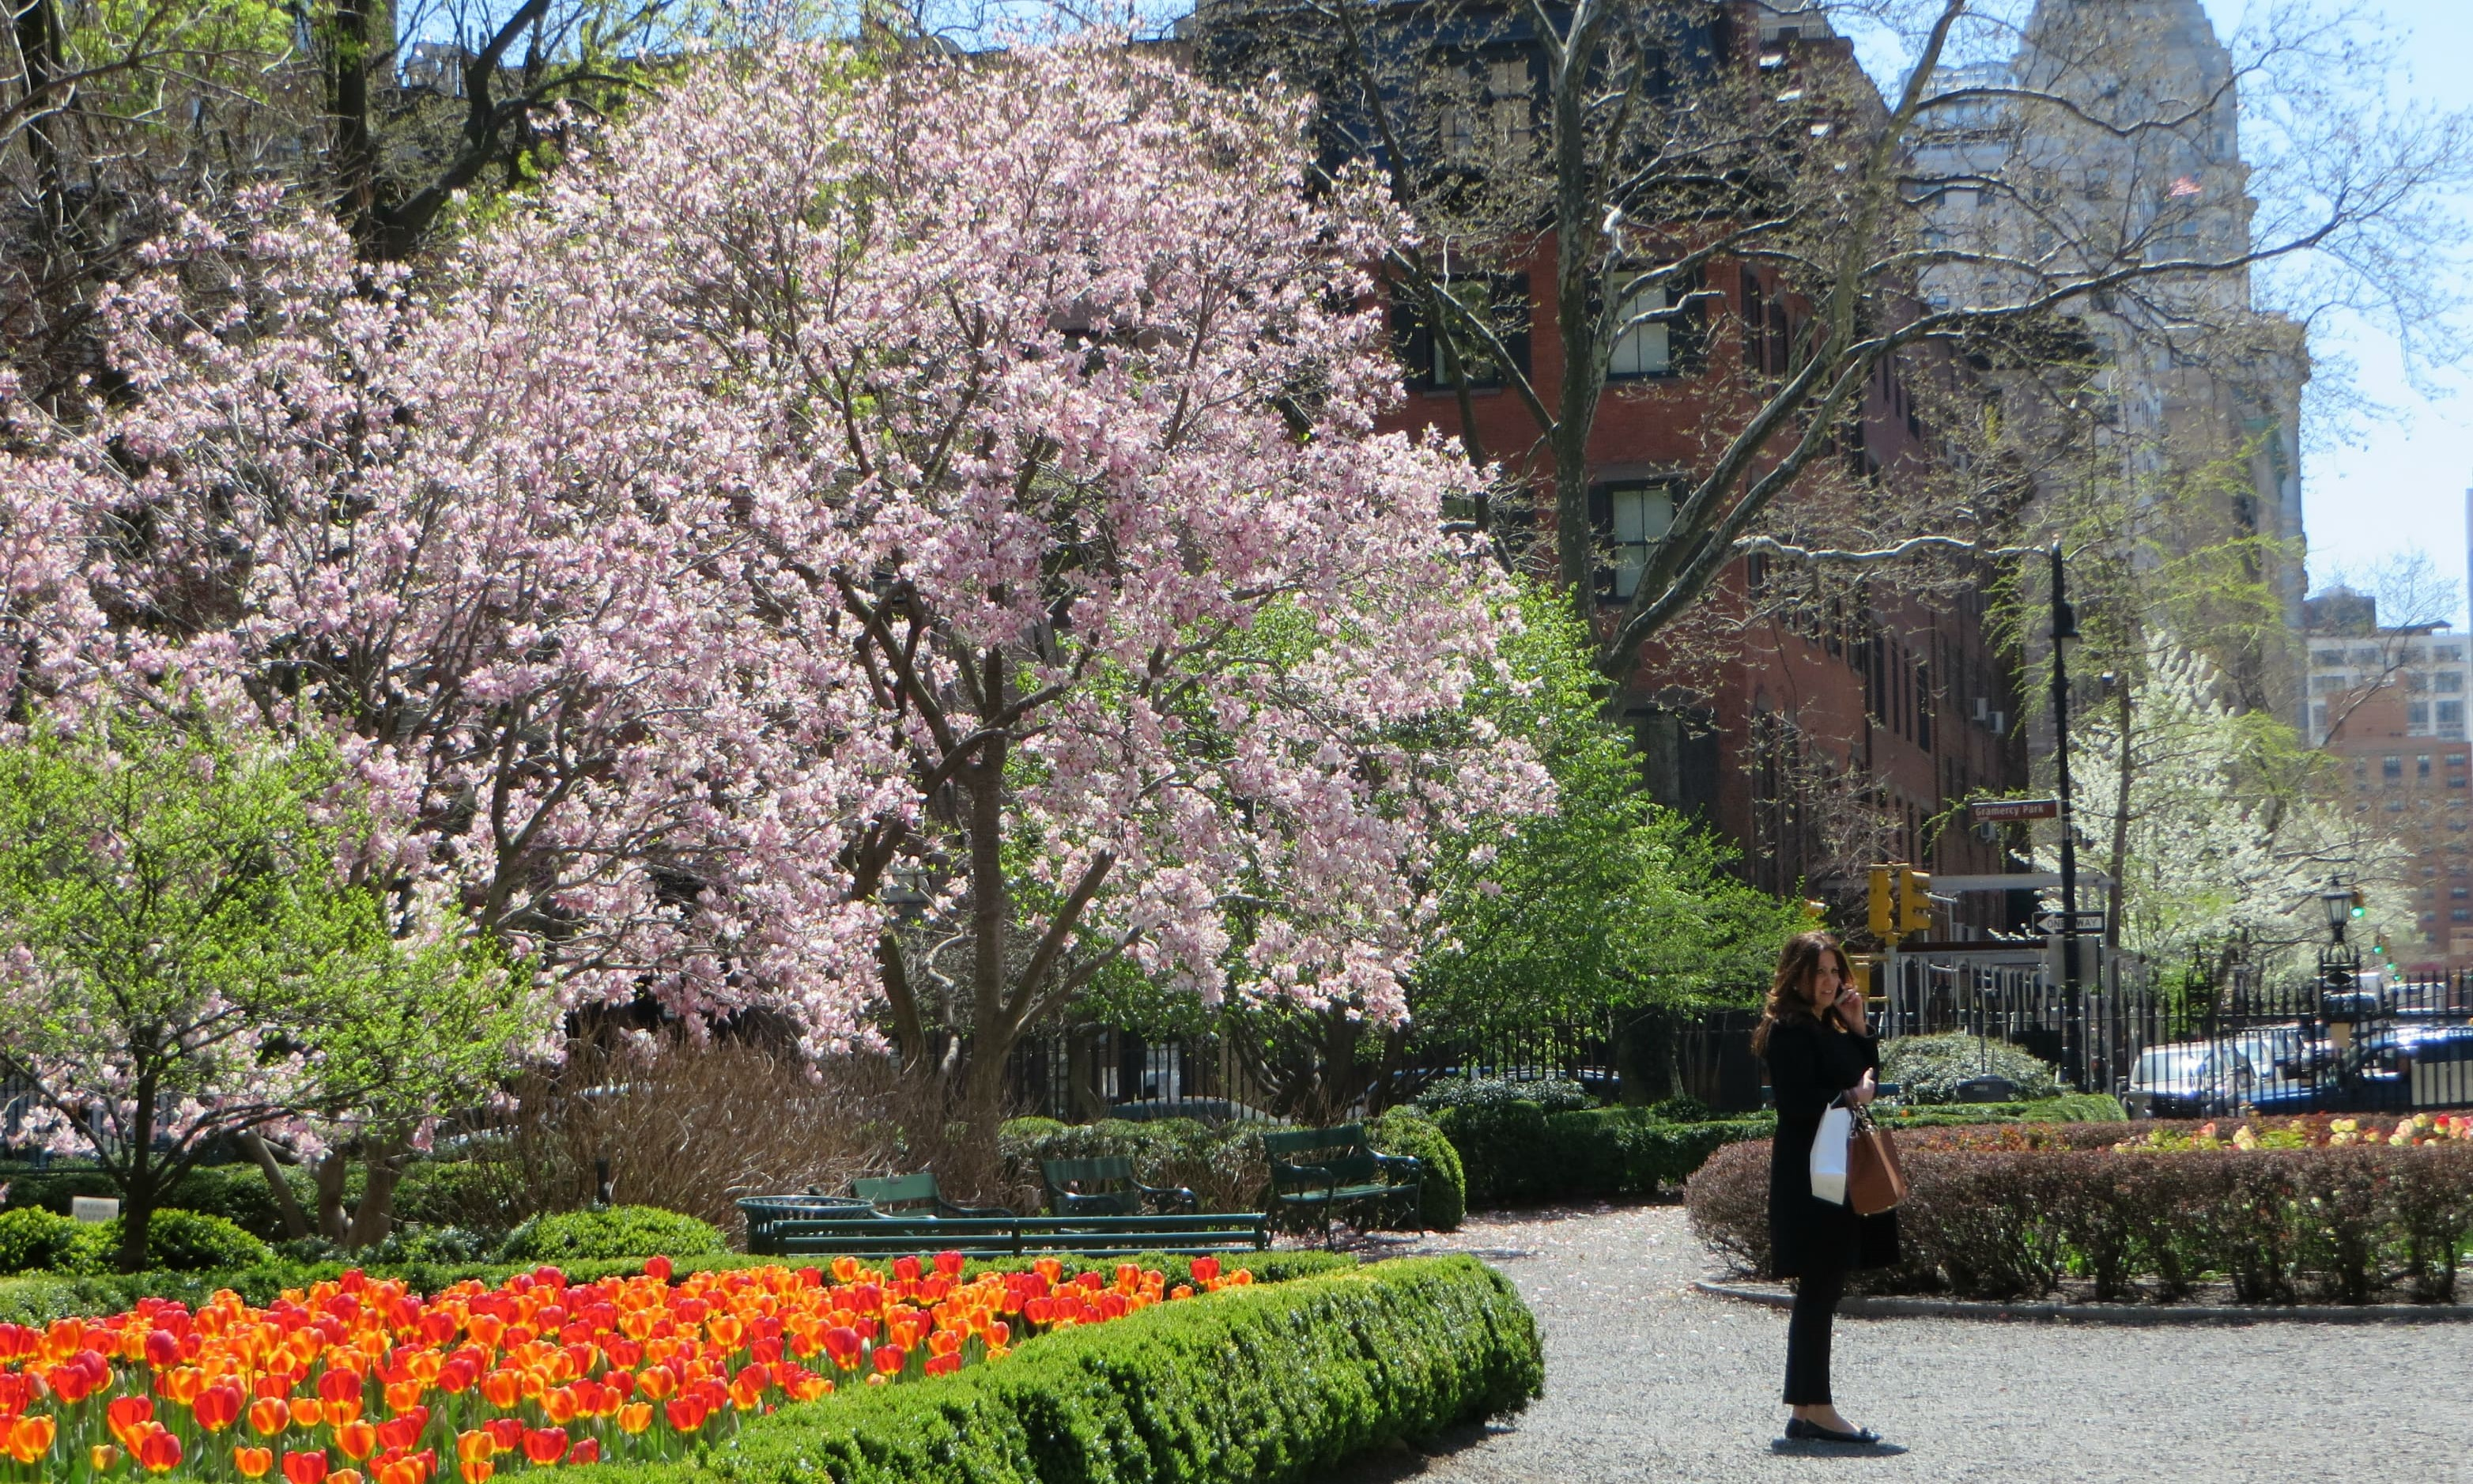 Gramercy tulips and cherry blossom trees